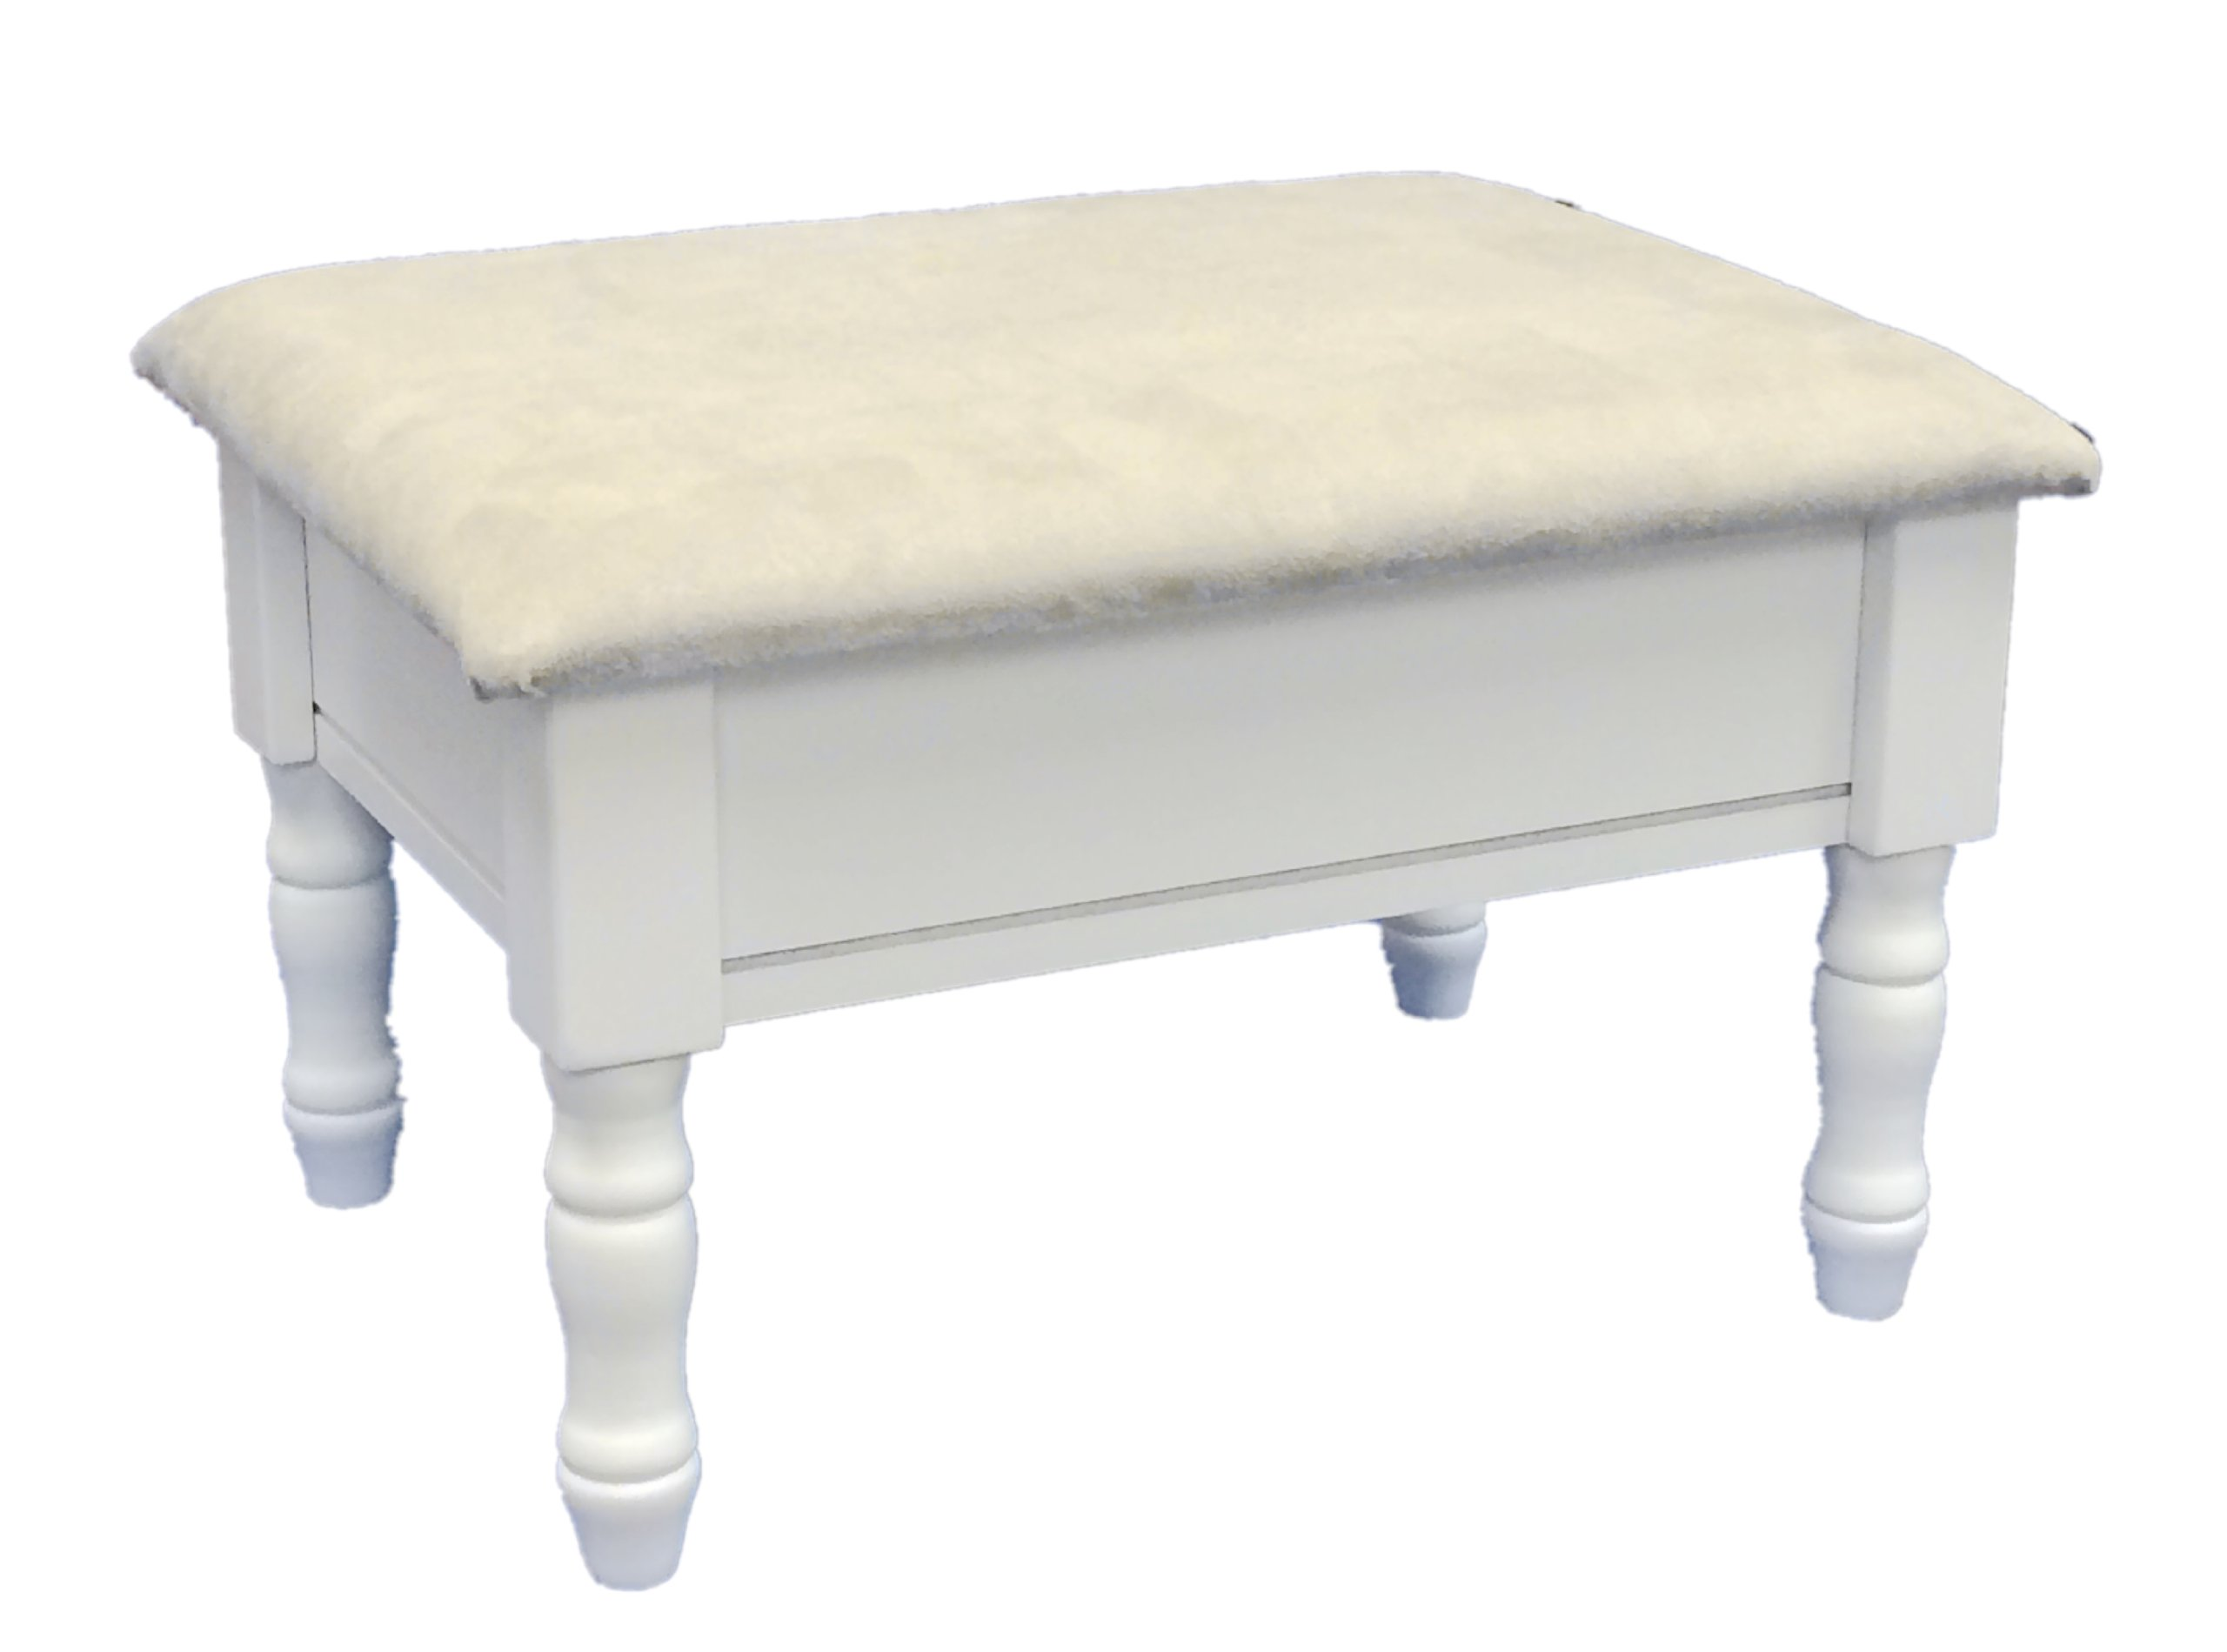 Frenchi Home Furnishing Footstool with Storage, White finish with dark beige cover